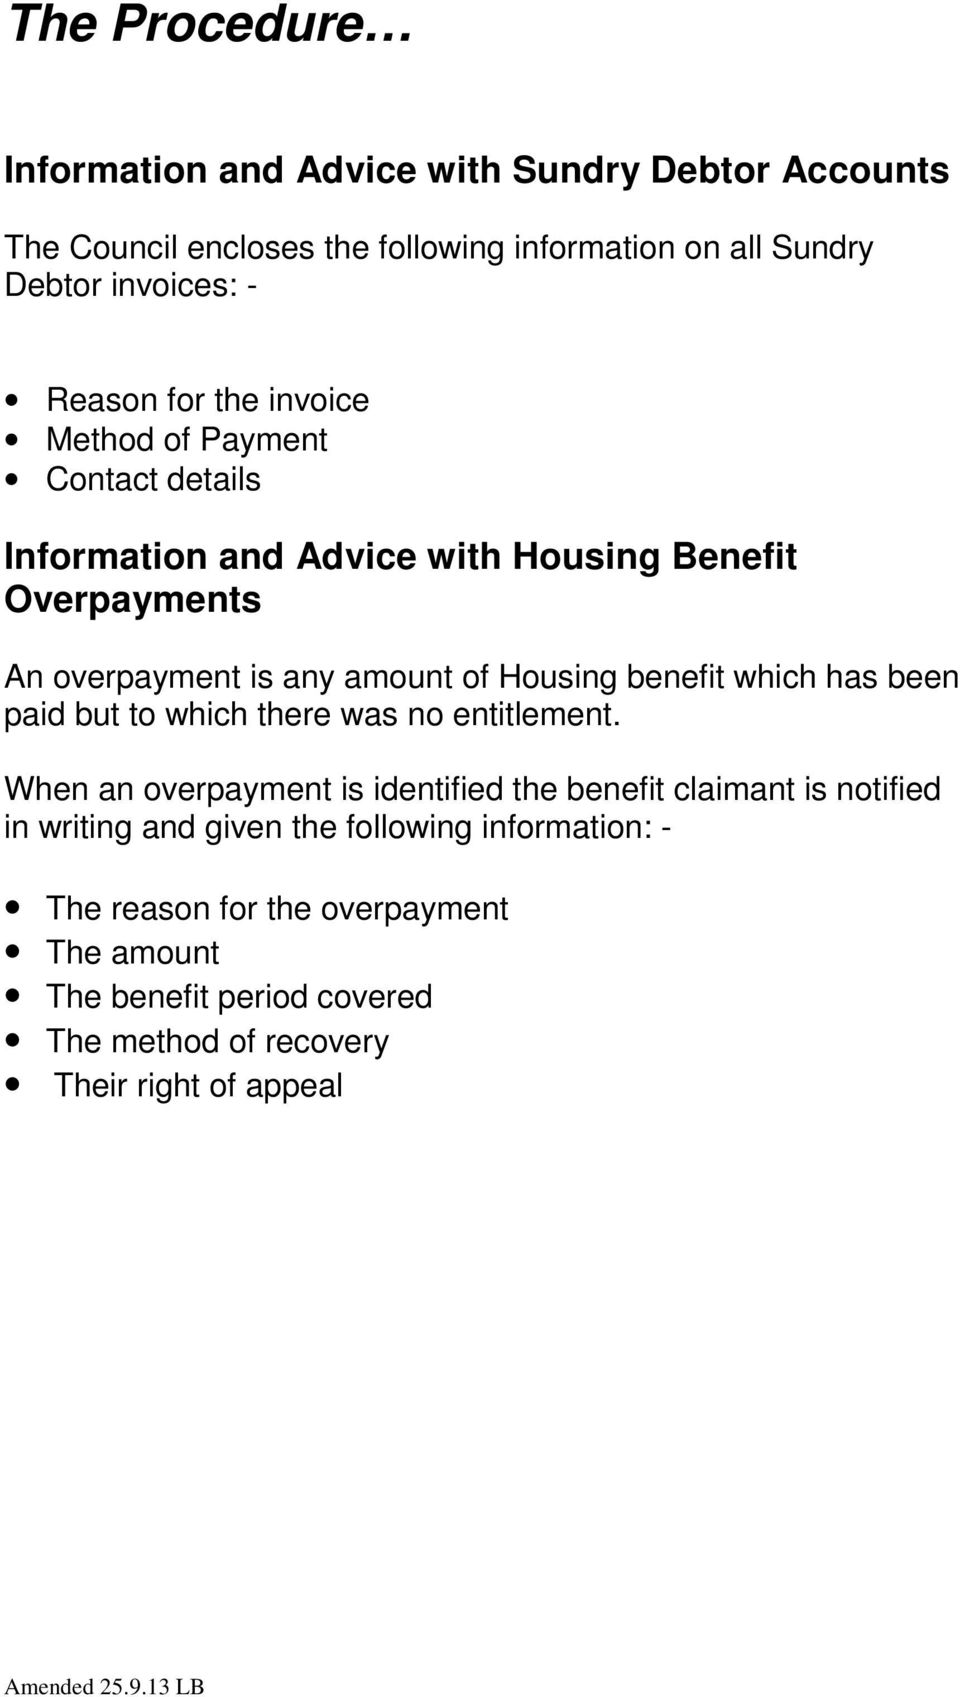 Housing benefit which has been paid but to which there was no entitlement.